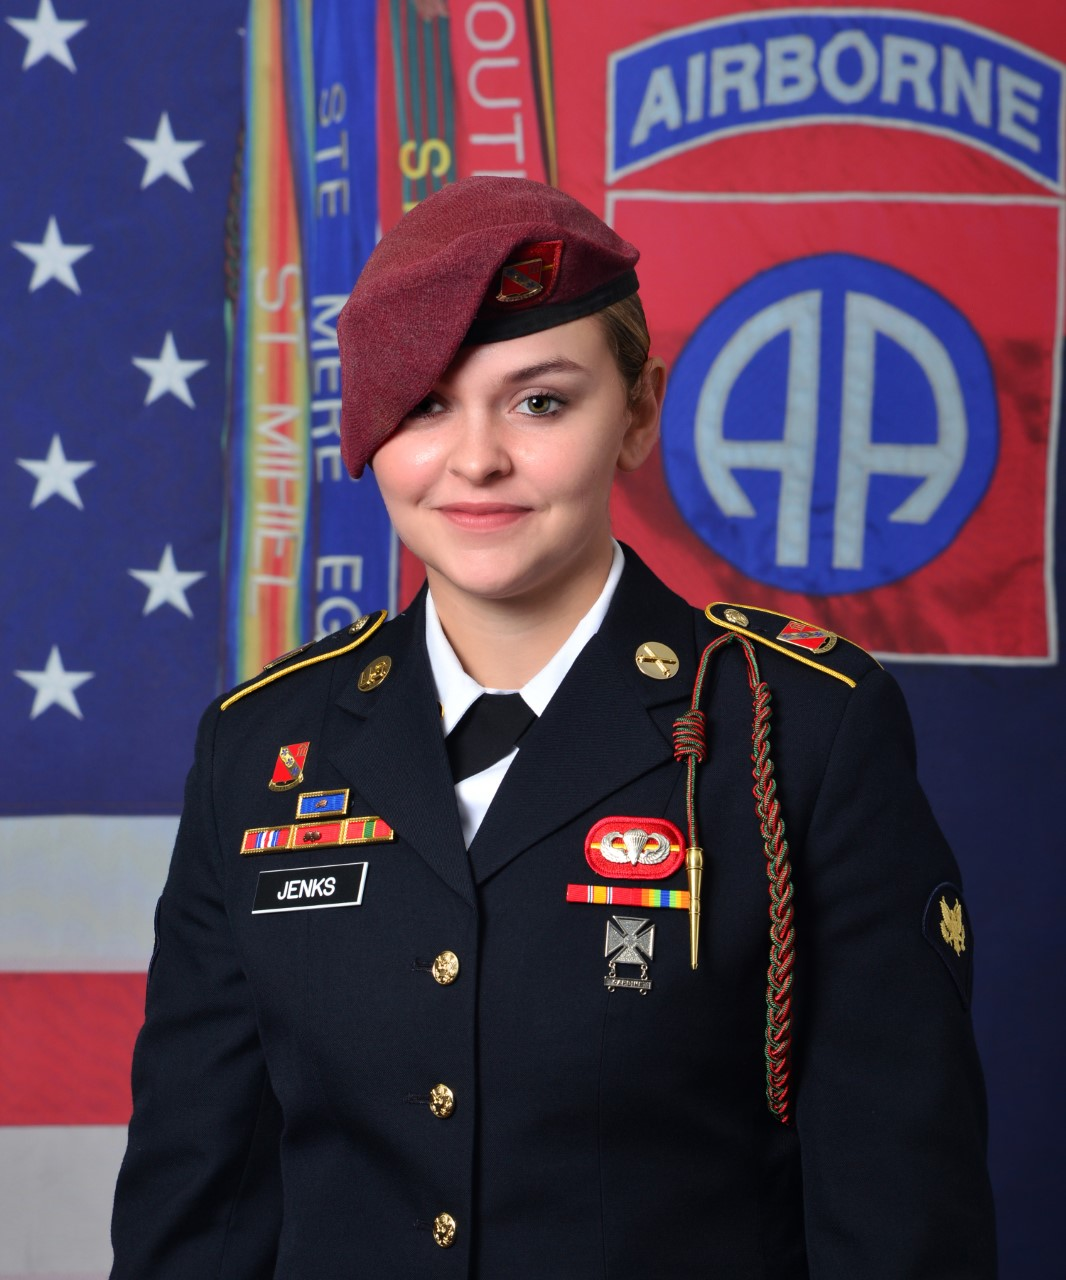 Spc. Abigail Jenks, 21, of Gansevoort, New York